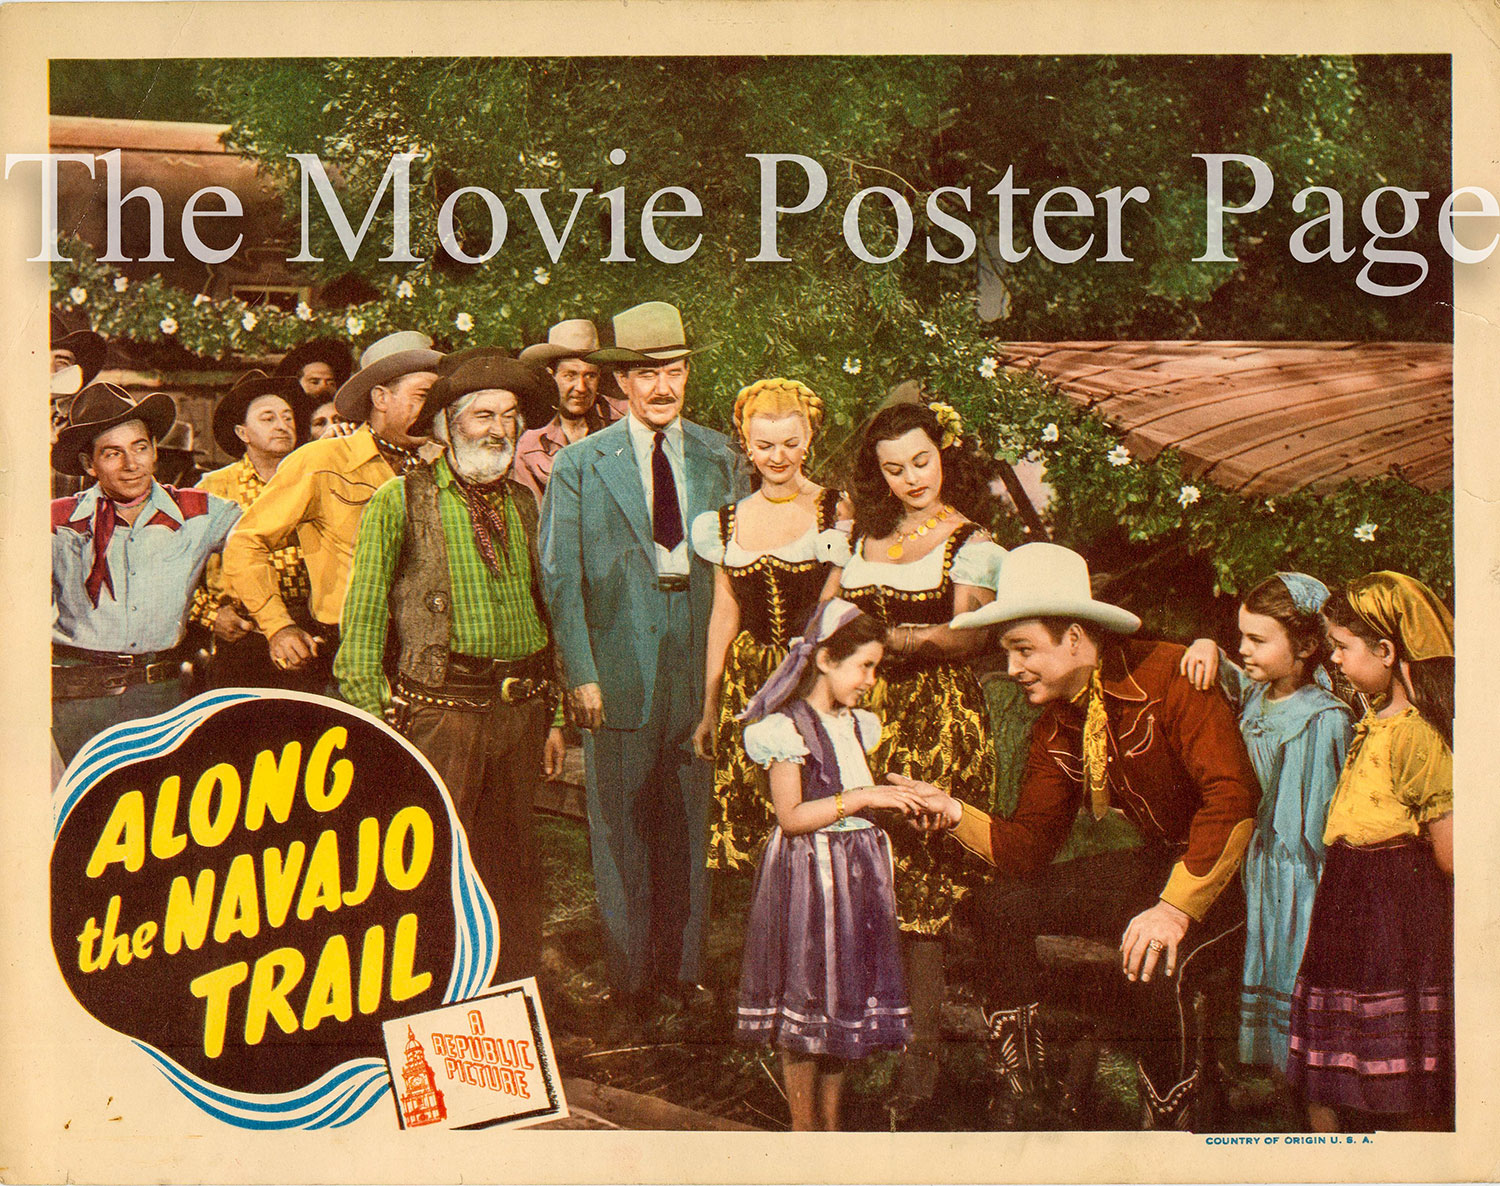 Pictured is a Republic lobby card for the 1945 Frank McDonald film Along the Navajo Trail starring Roy Rogers.